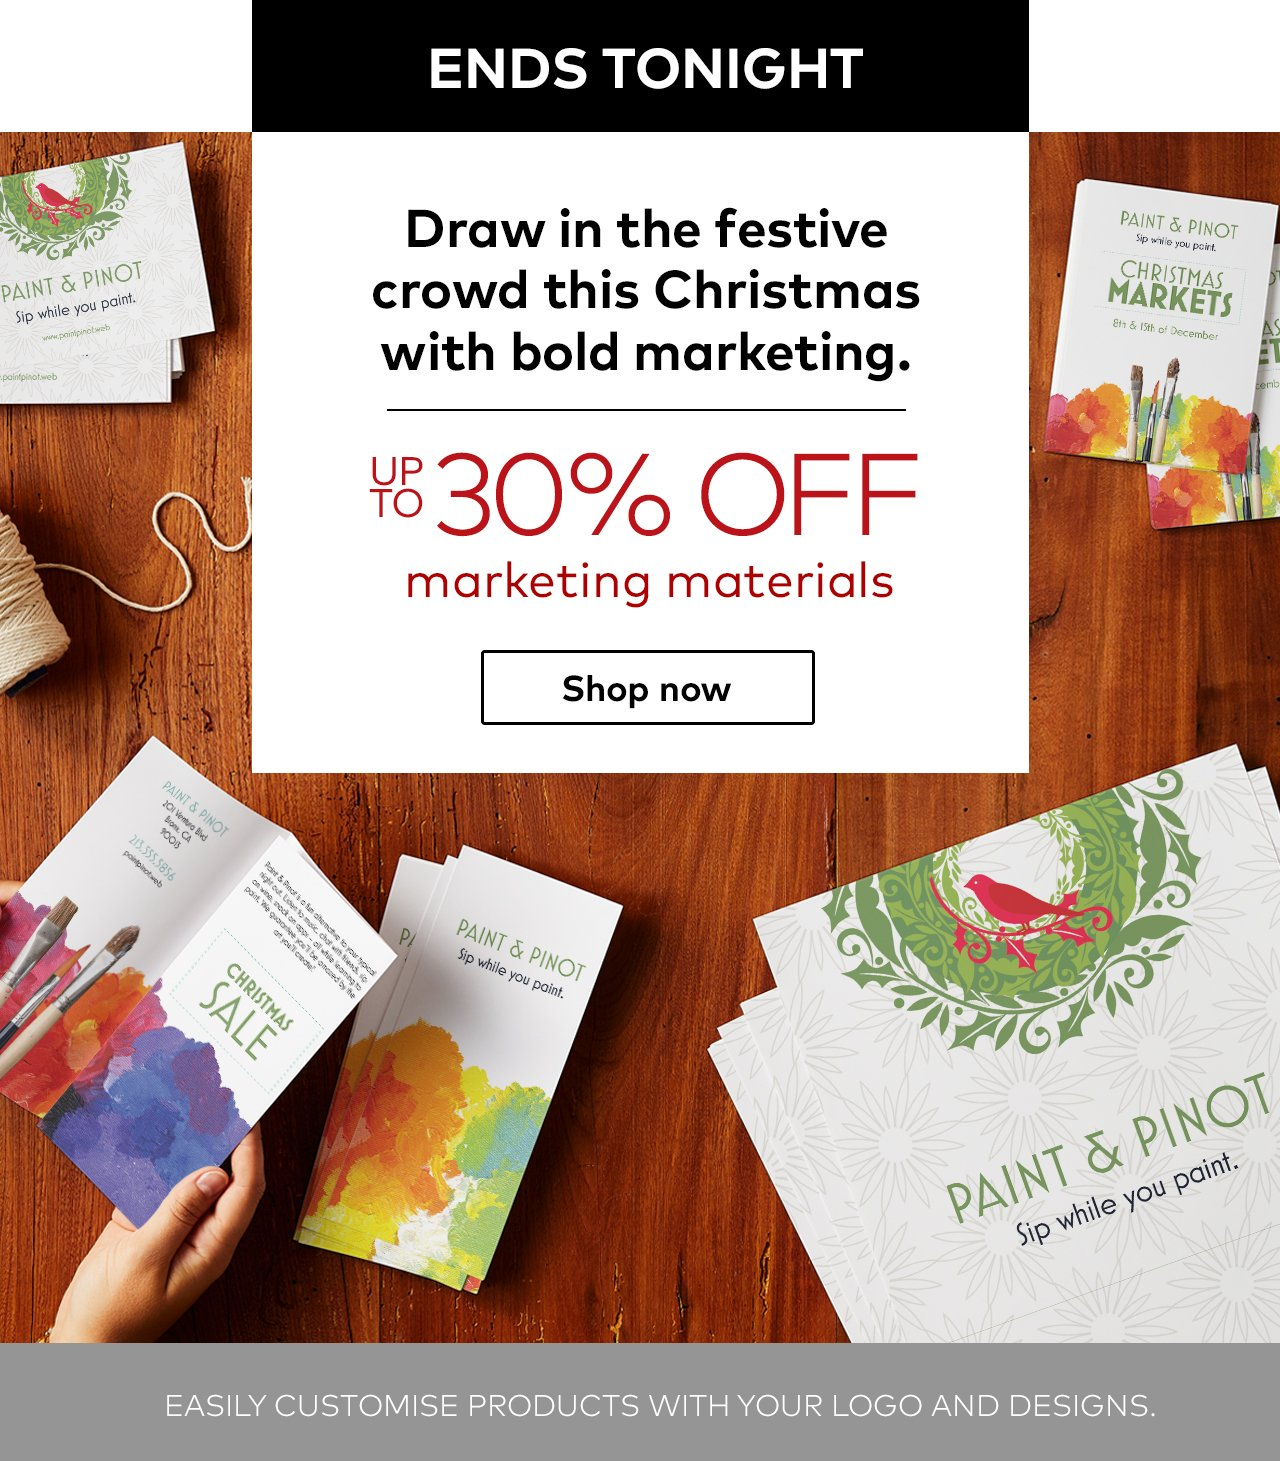 Ends tomorrow. Draw in the festive crowd this Christmas with bold marketing. Up to 30% off marketing materials. Shop now.